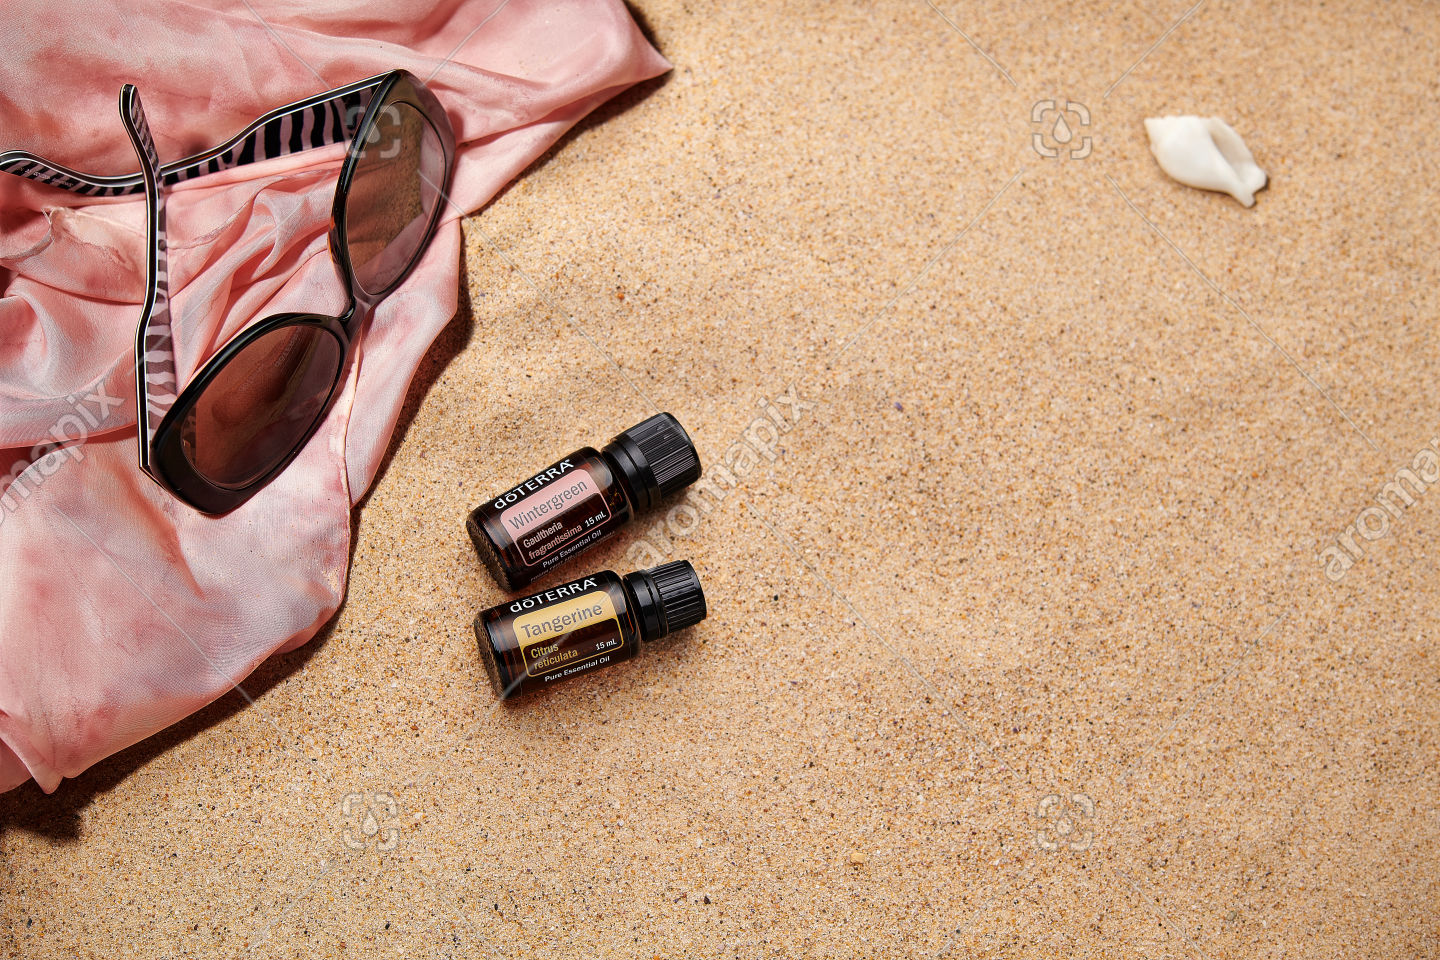 doTERRA Wintergreen and Tangerine with accessories on sand